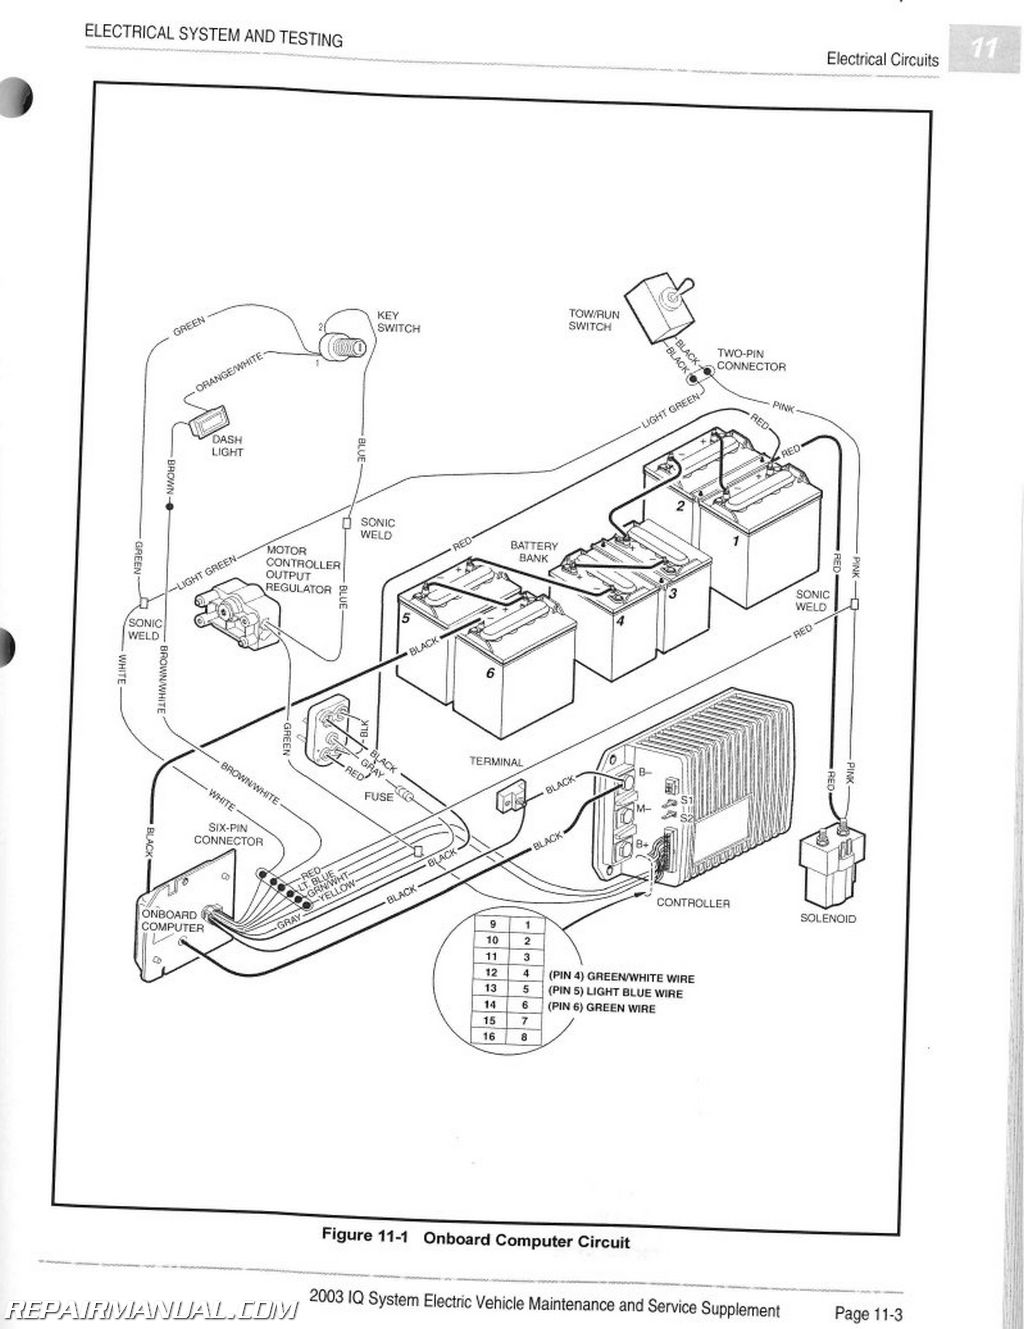 2003 Club Car IQ System Maintenance And Service Manual Supplement page 1 wiring diagram for 36 volt club car golf cart the wiring diagram 1984 club car ds electric wiring diagram at reclaimingppi.co